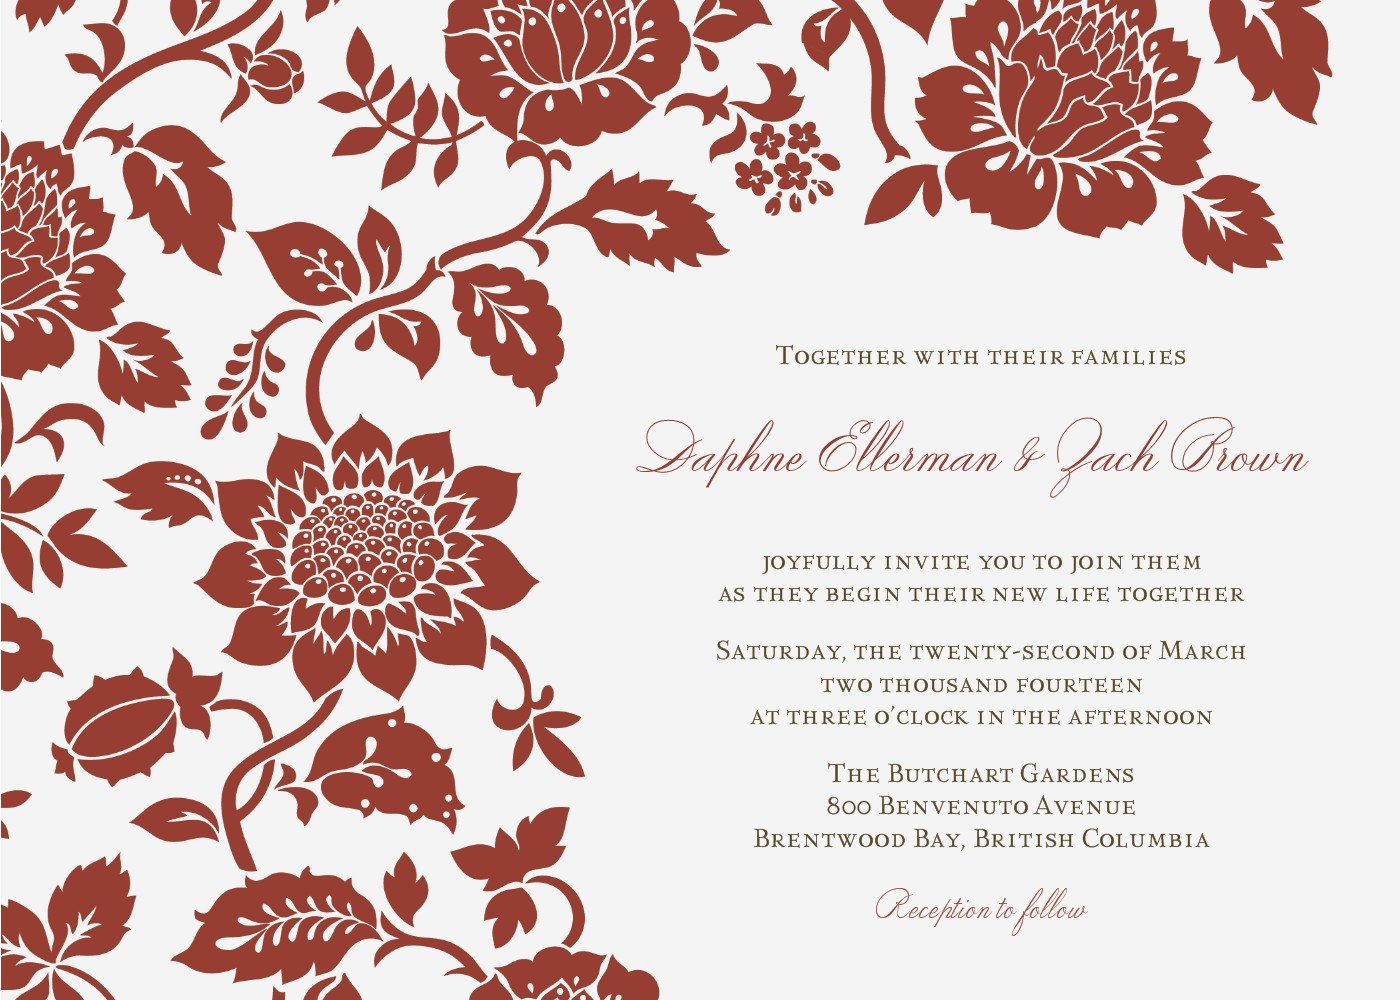 Wedding Invitation Email Template Awesome Wedding Invitation Wording Wedding Invitations Email Template